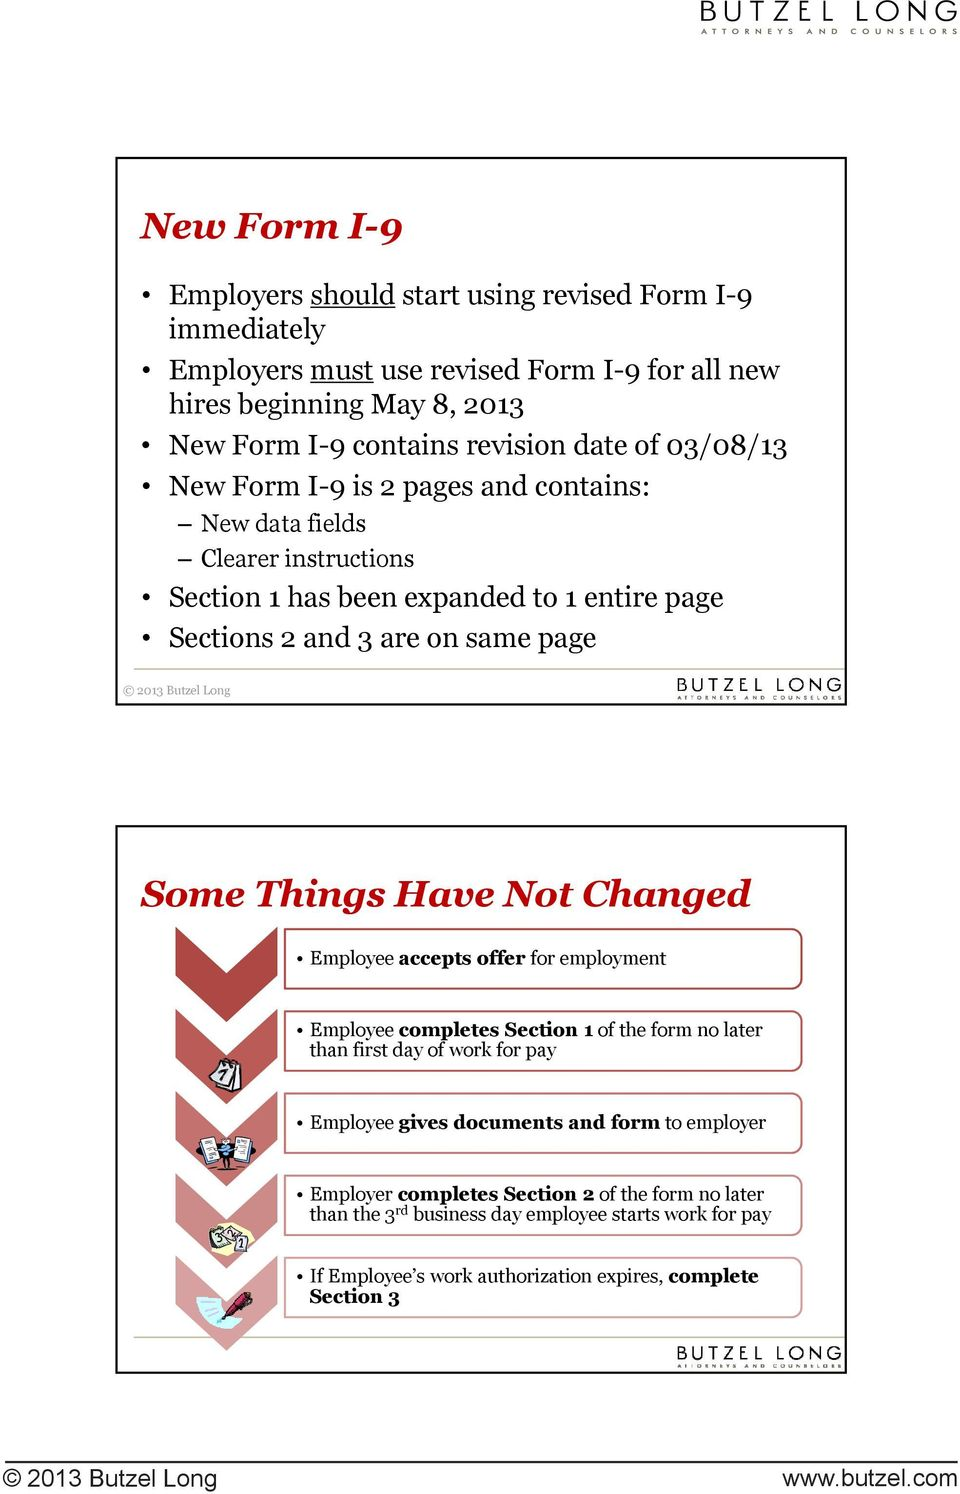 Things Have Not Changed Employee accepts offer for employment Employee completes Section 1 of the form no later than first day of work for pay Employee gives documents and form to